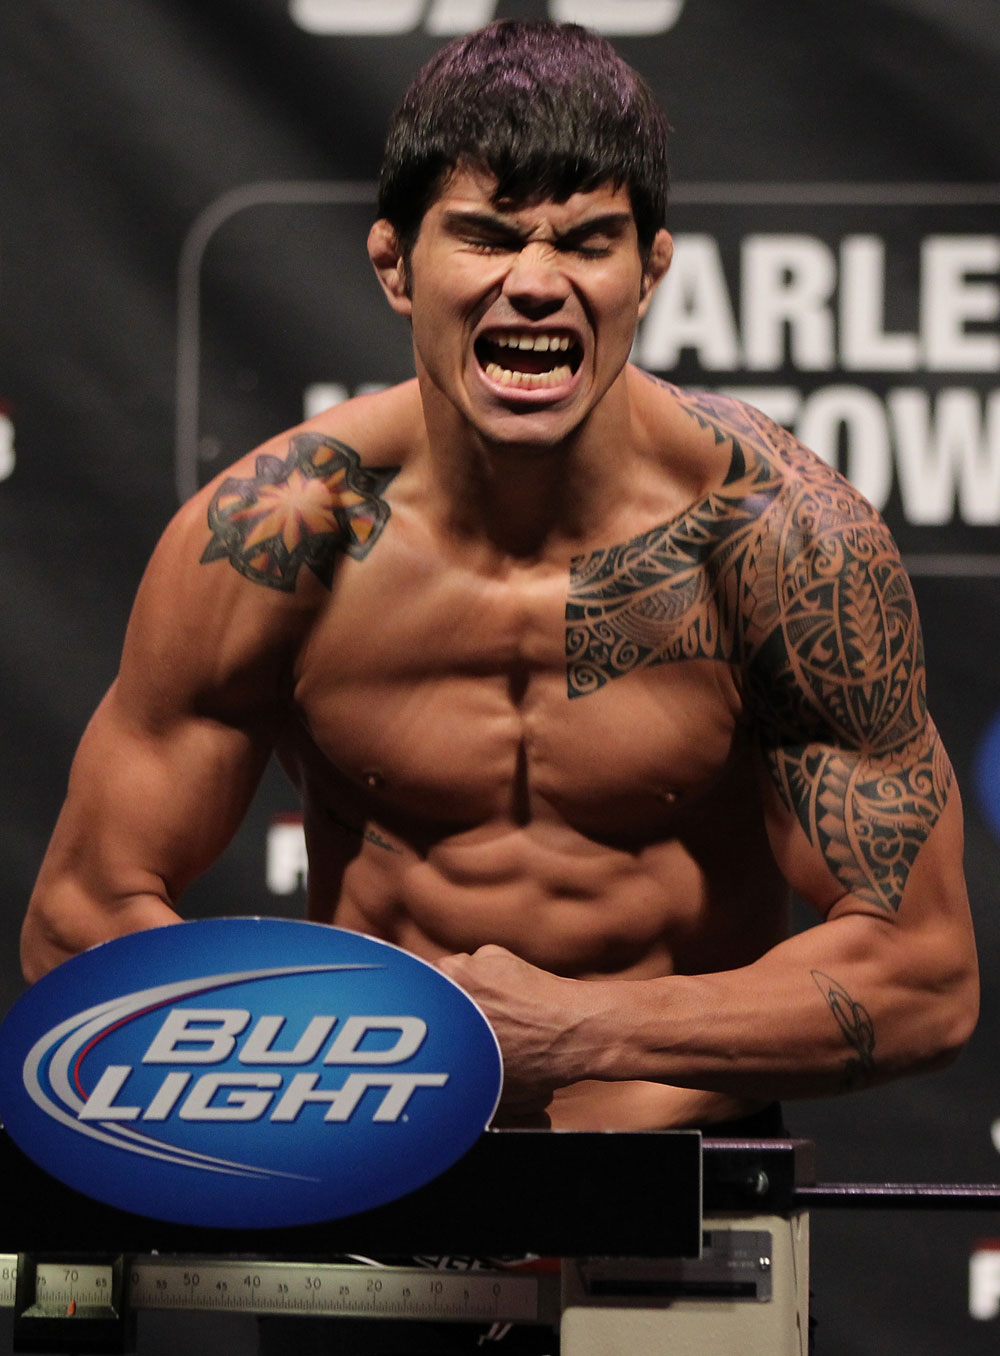 SUNRISE, FL - JUNE 07:   Erick Silva makes weight during the UFC on FX 3 official weigh in at Bank Atlantic Center on June 7, 2012 in Sunrise, Florida.  (Photo by Josh Hedges/Zuffa LLC/Zuffa LLC via Getty Images)